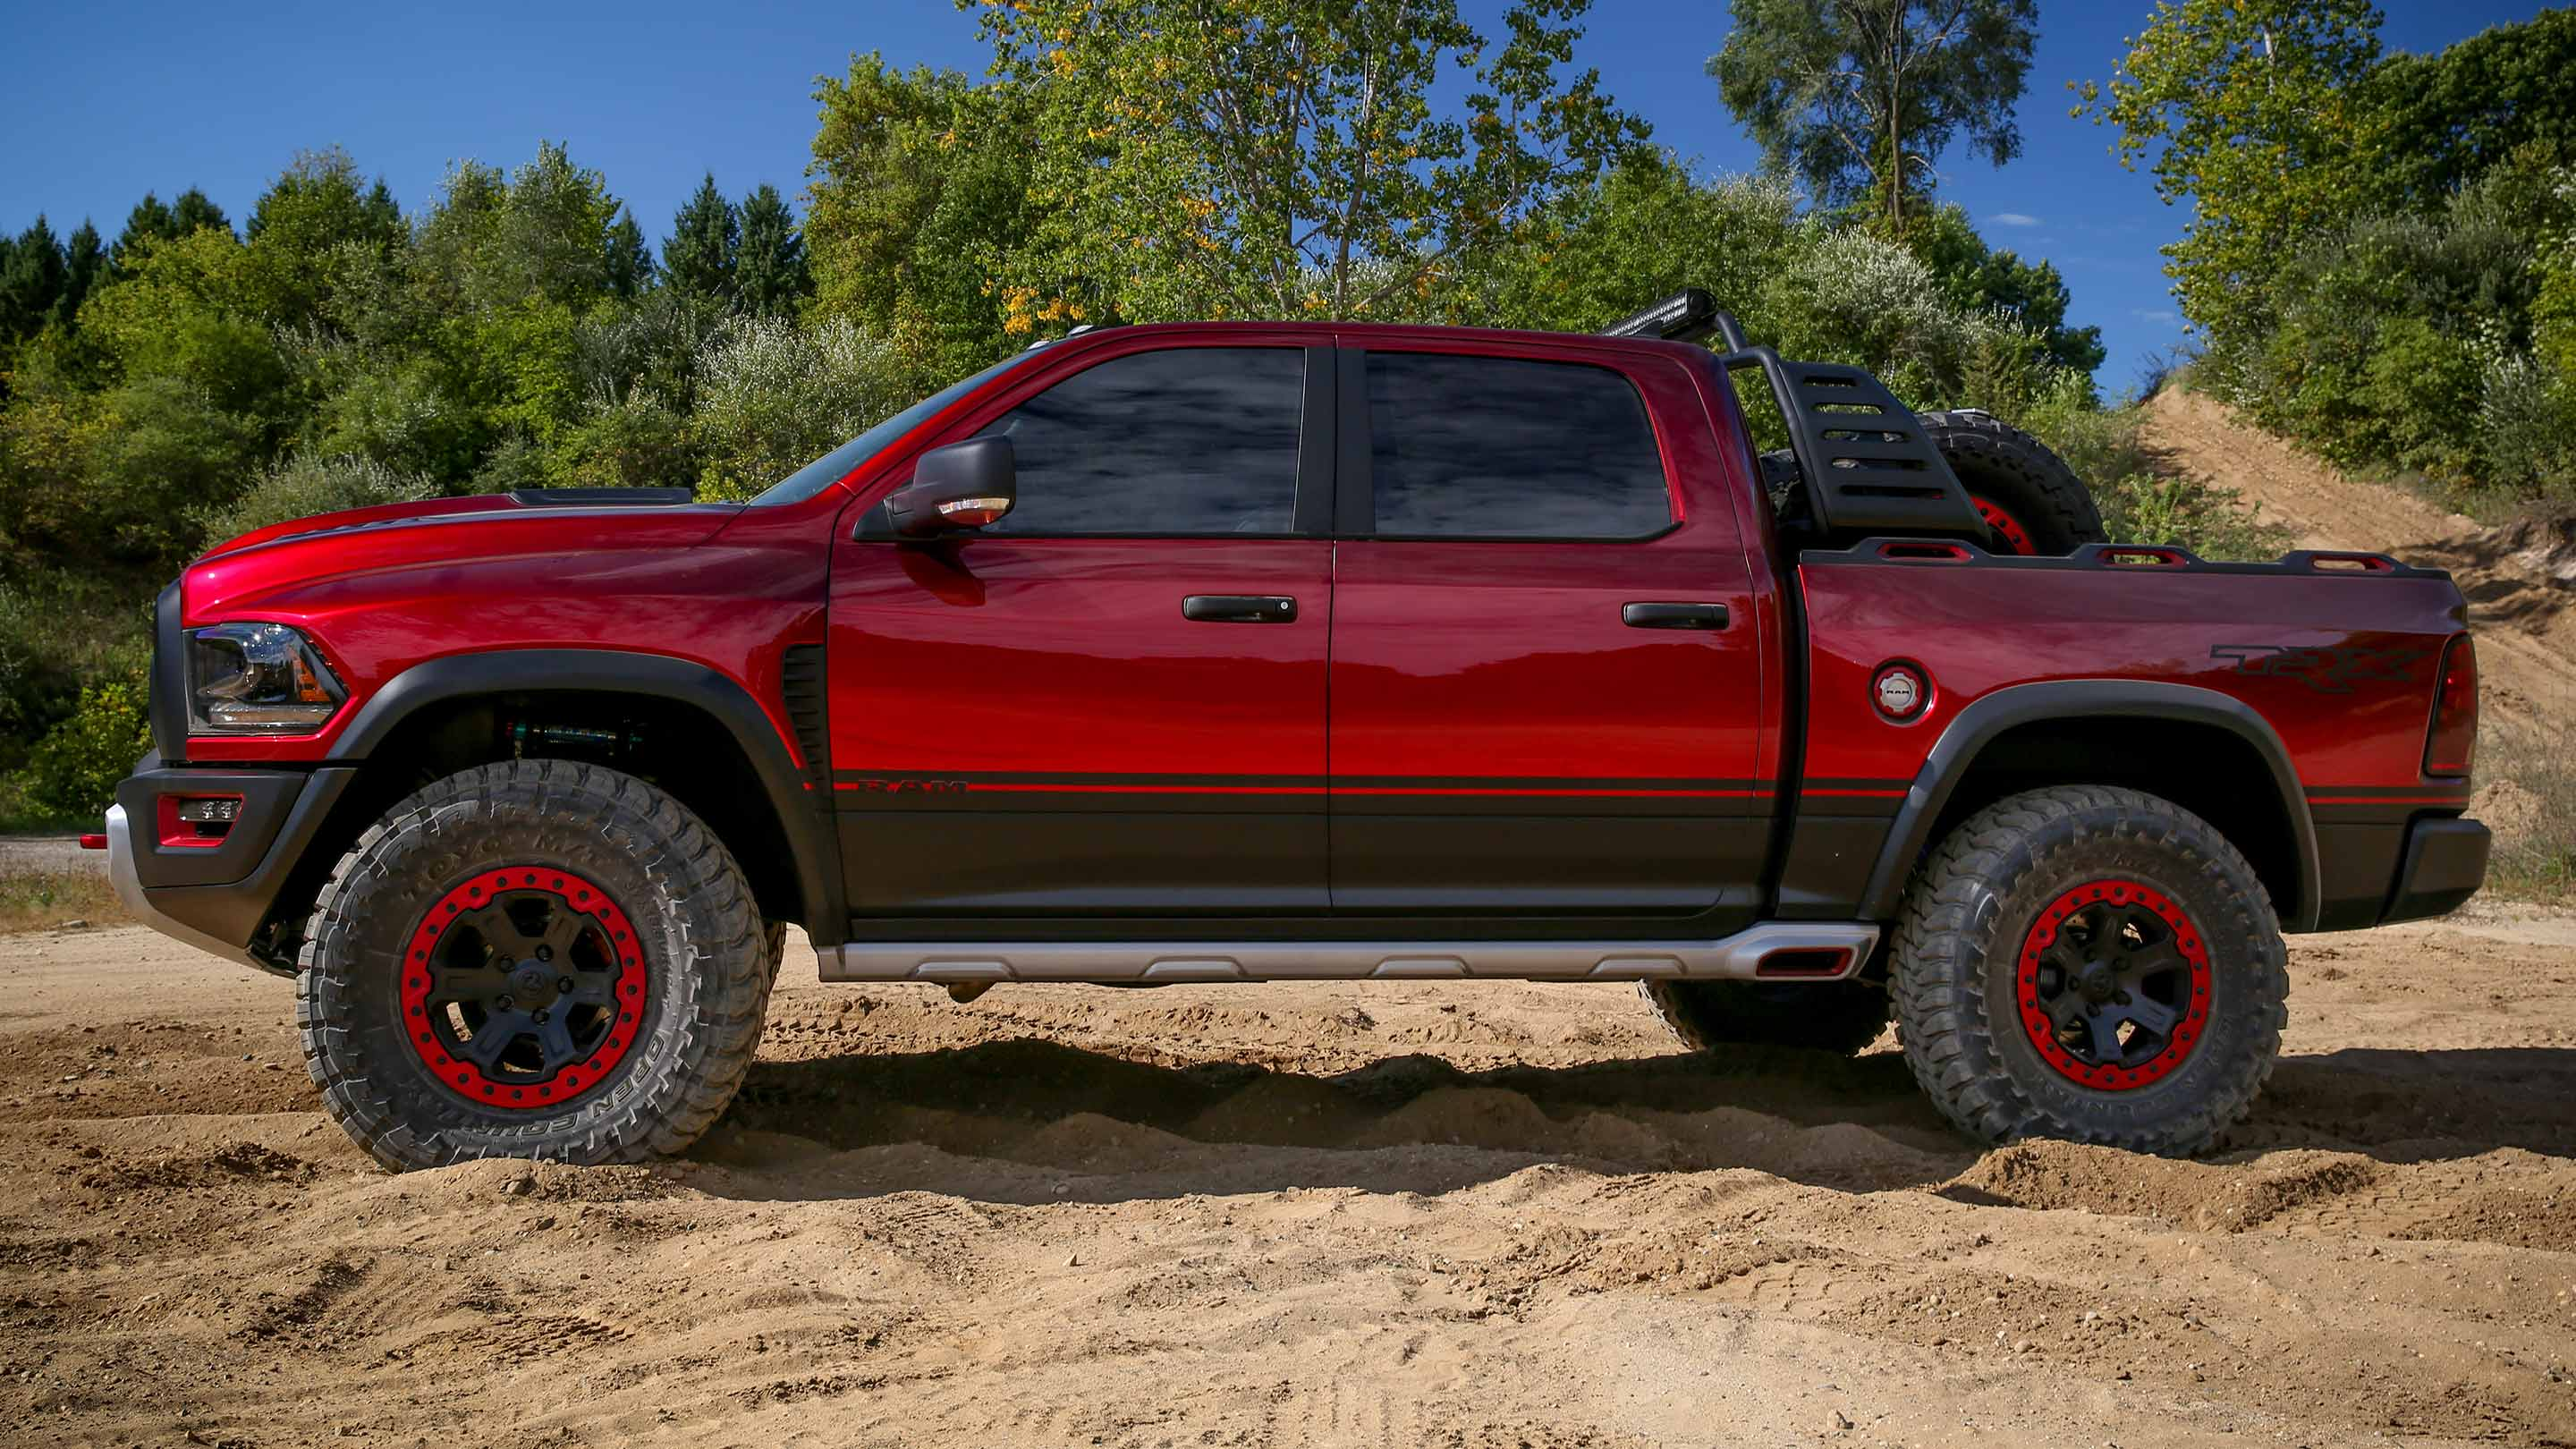 Ram 1500 Rebel Trx Special Edition Truck